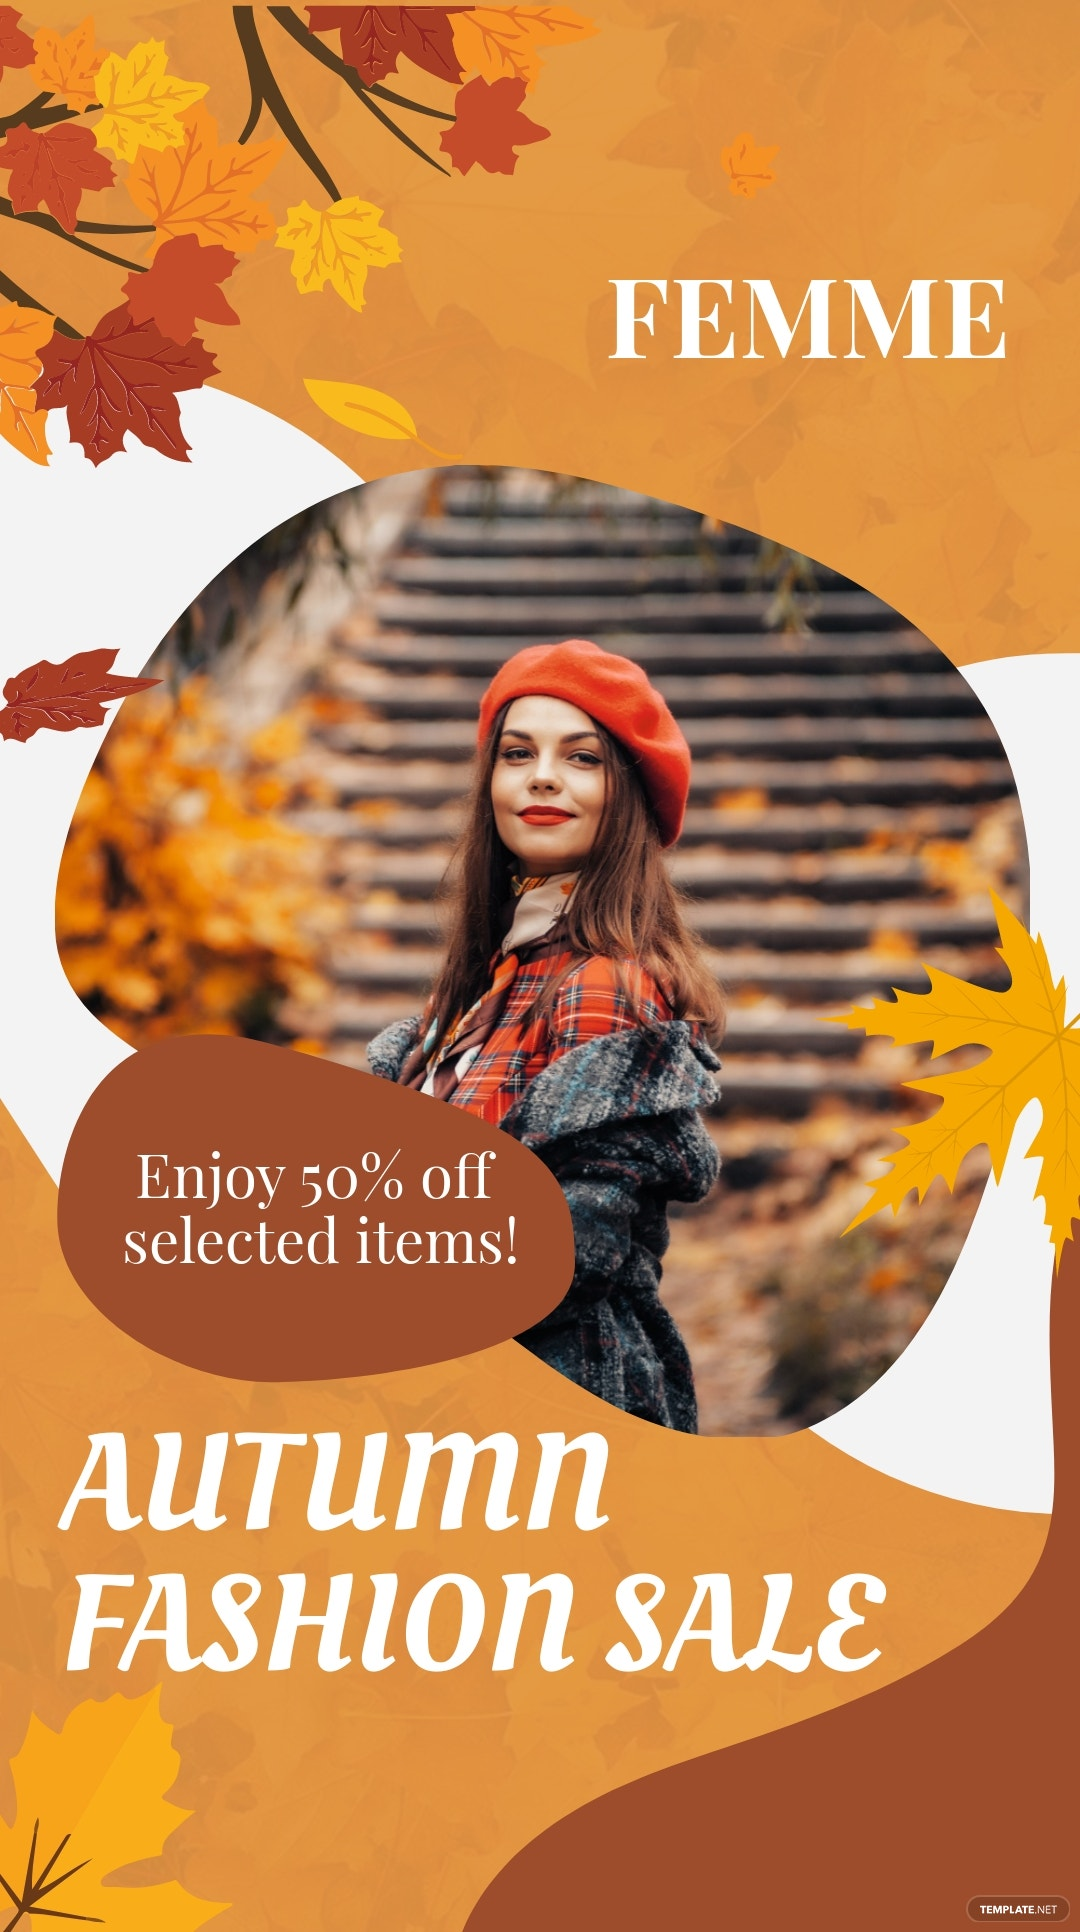 Seasonal Fashion Sale Instagram Story Template [Free JPG] - PSD